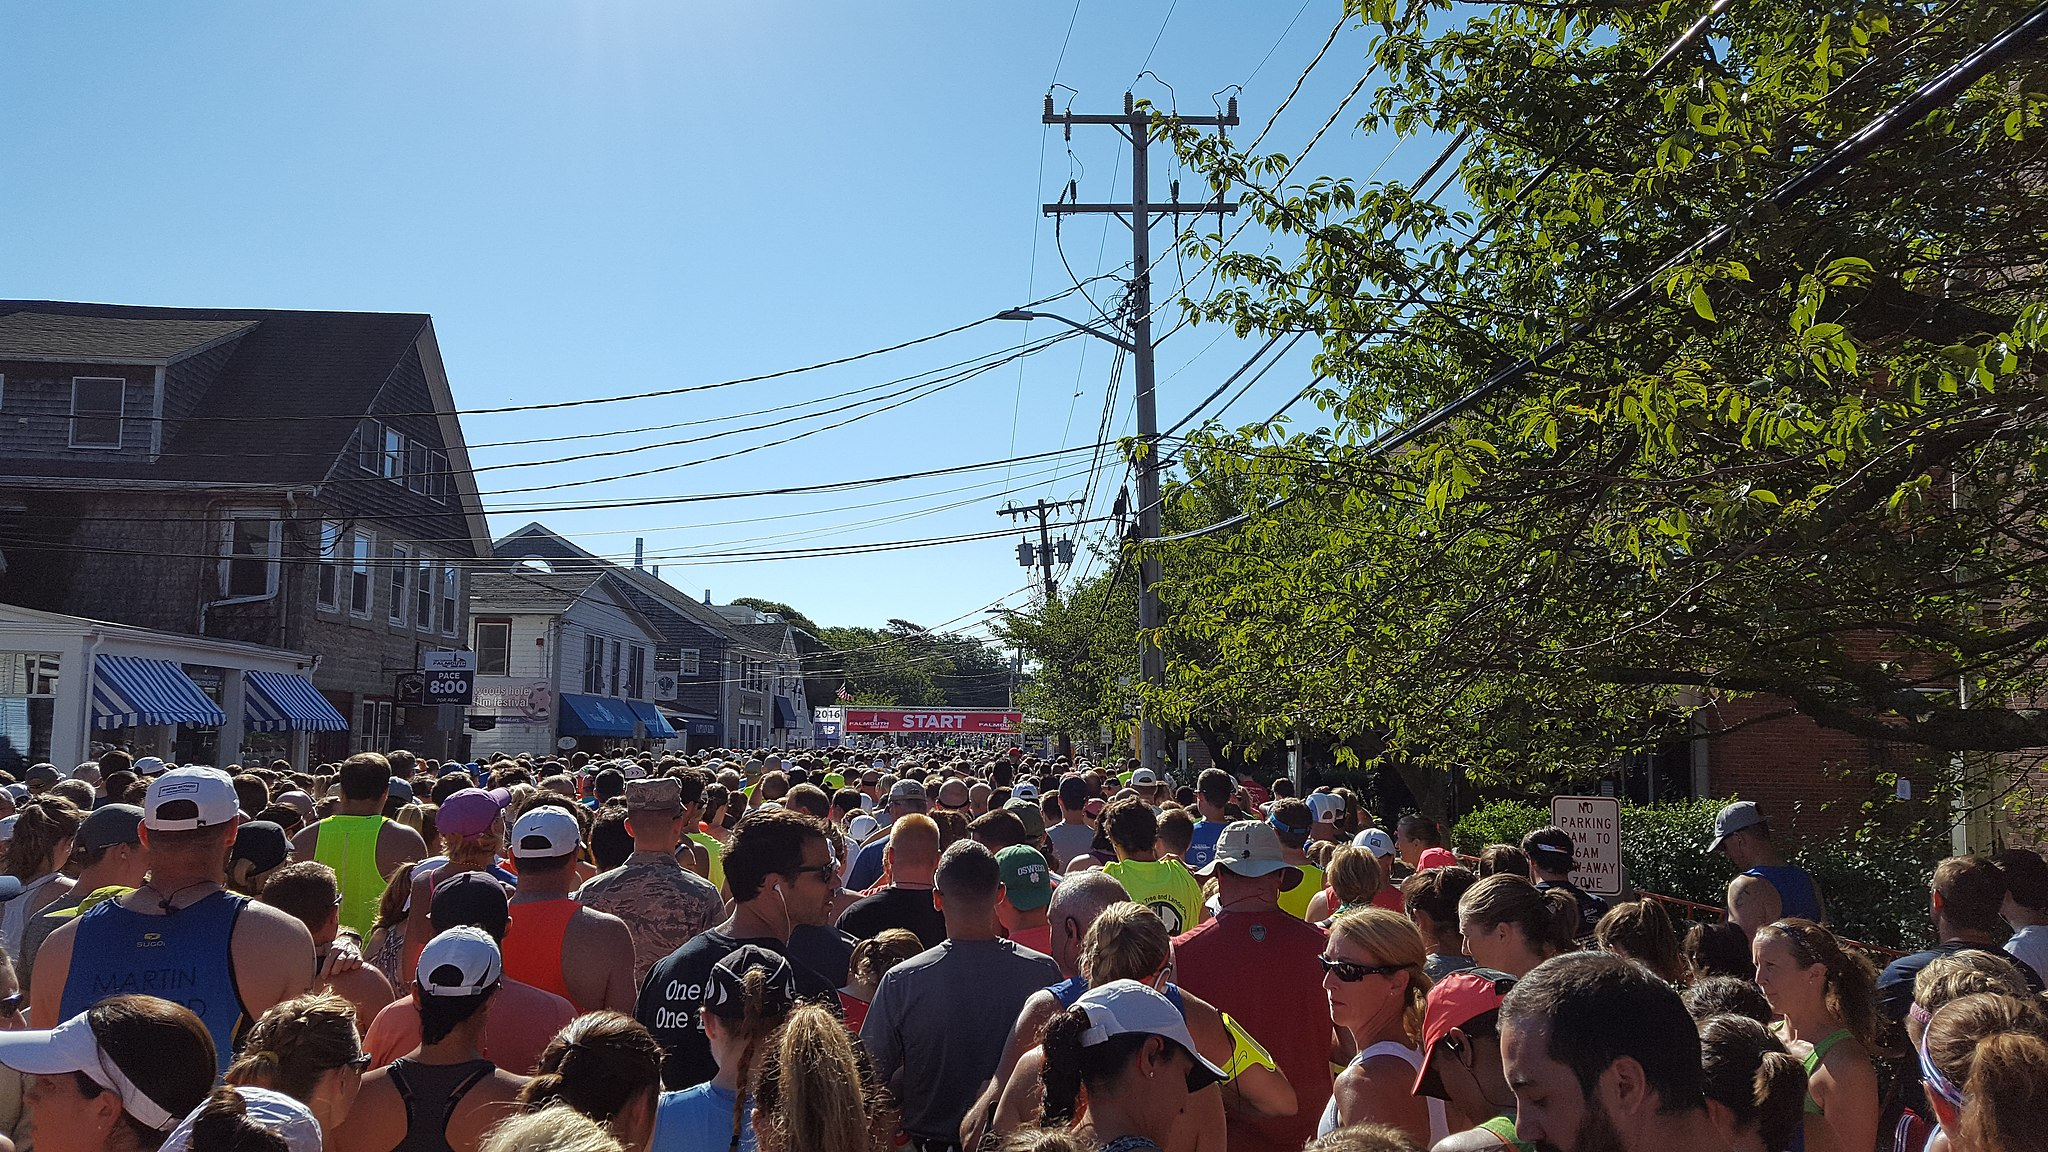 The starting line of the 2016 Falmouth Road Race - what a beautiful day!